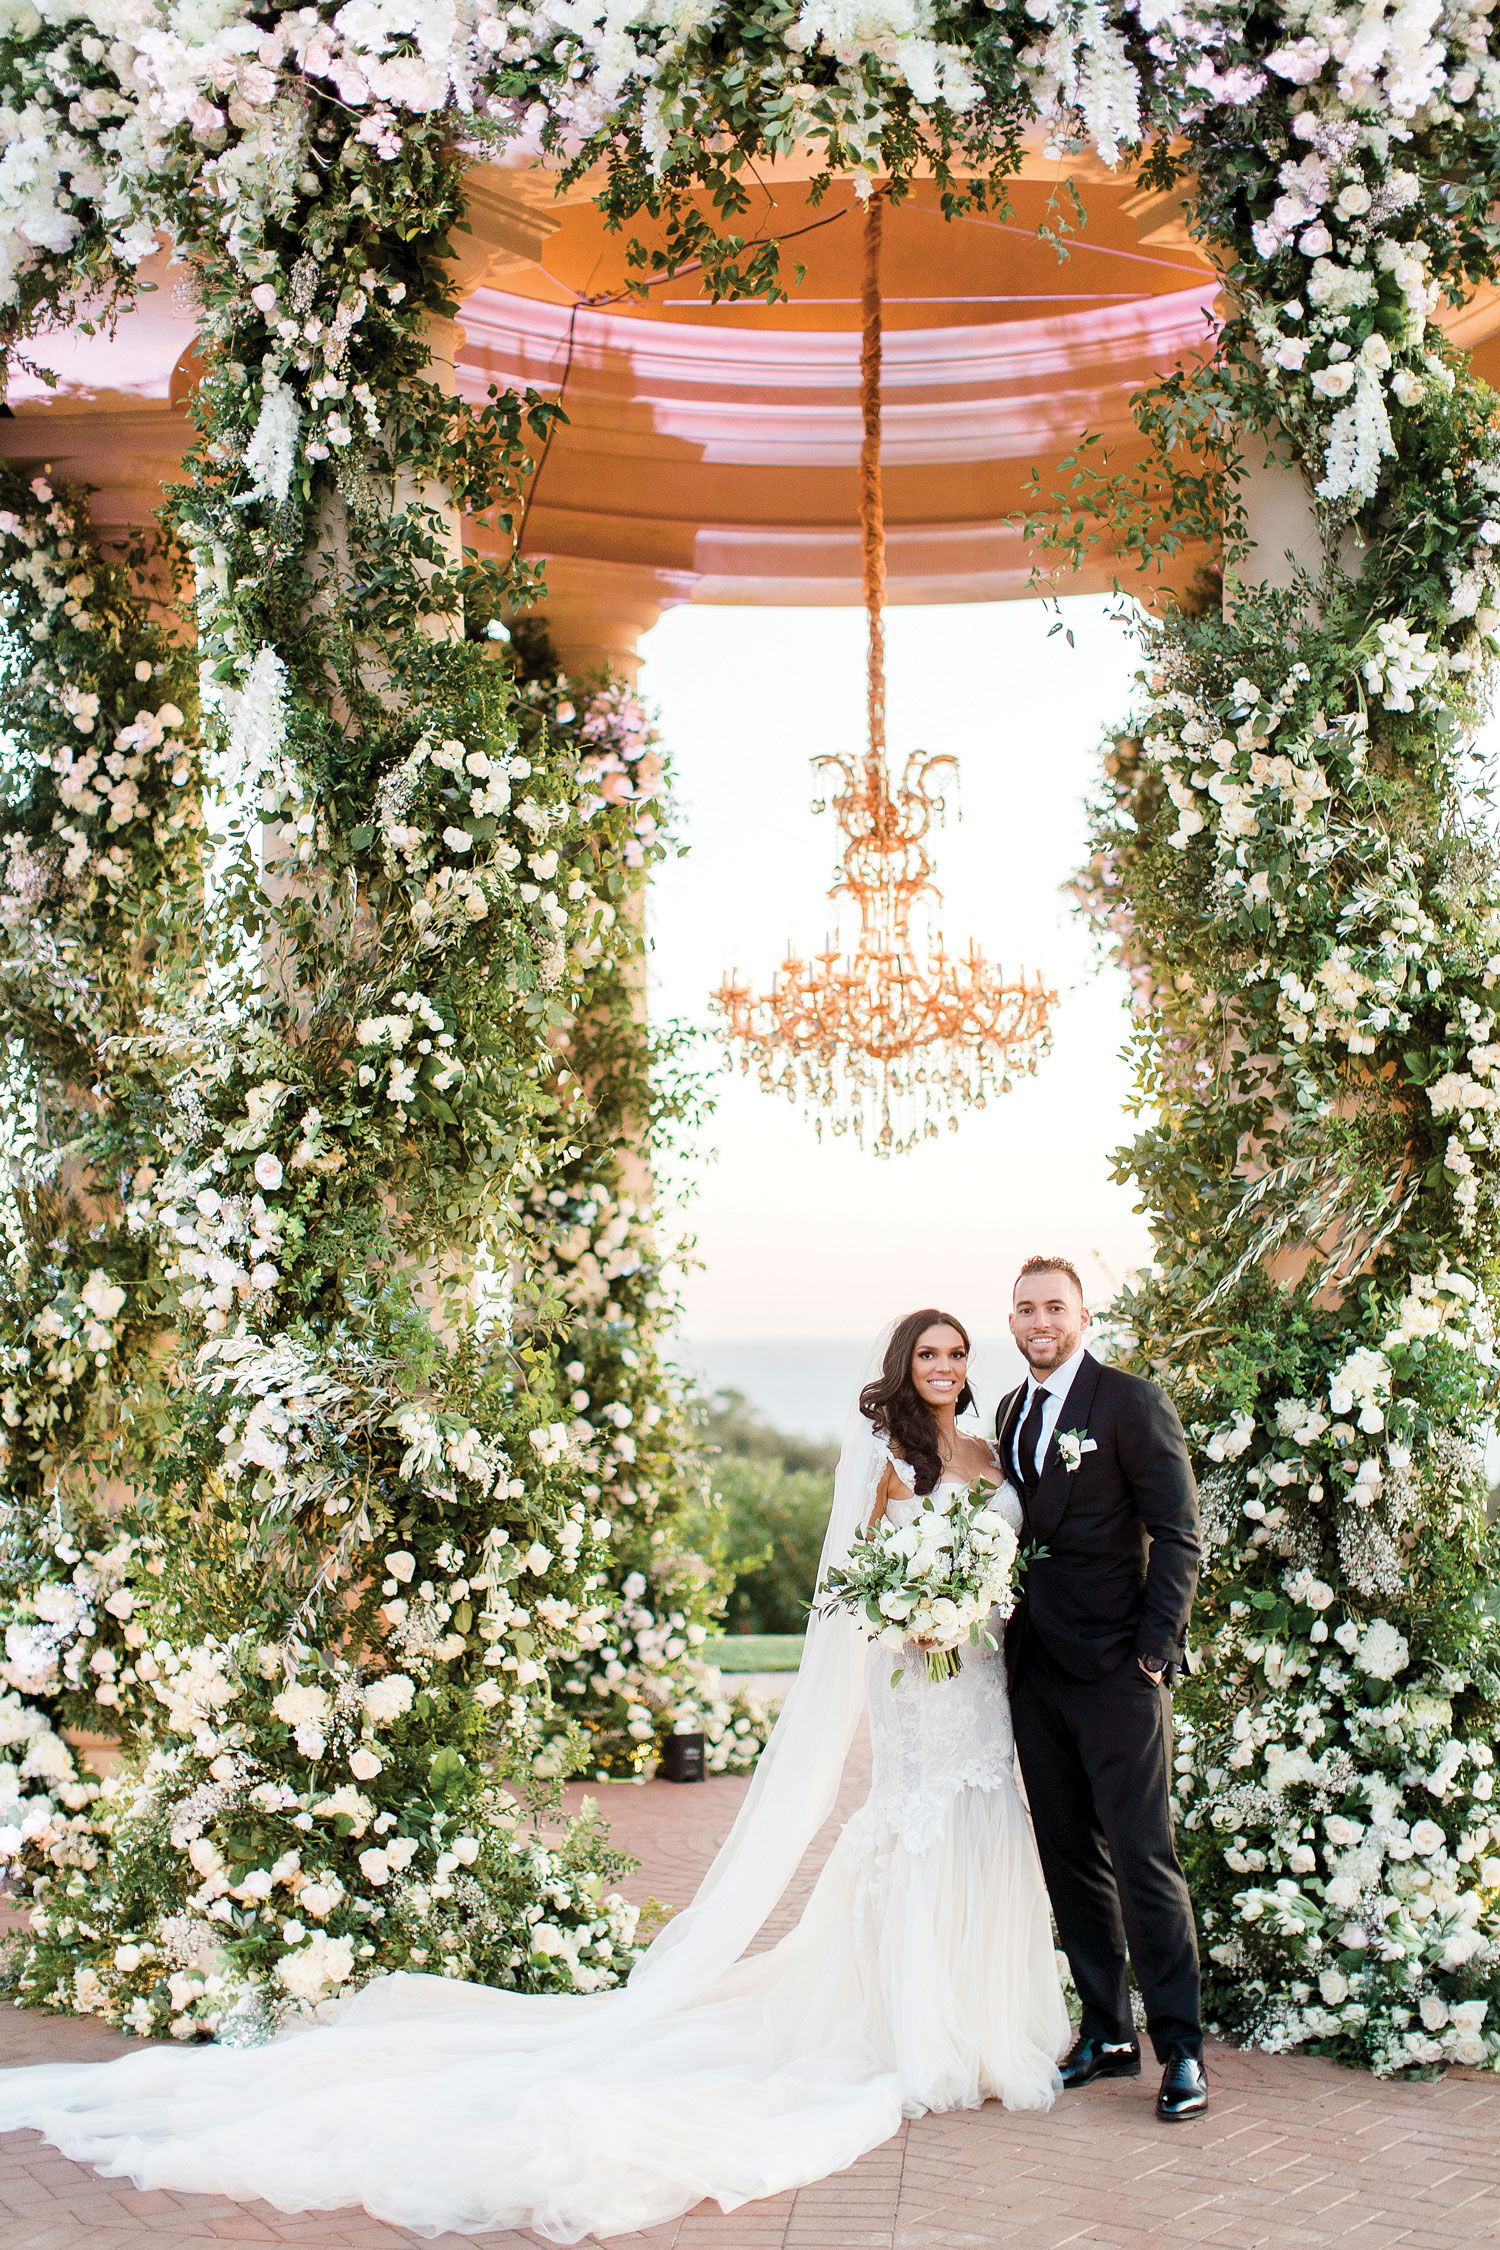 Inside Weddings Summer 2018 issue preview charlise castro and george springer III houston astros player wedding